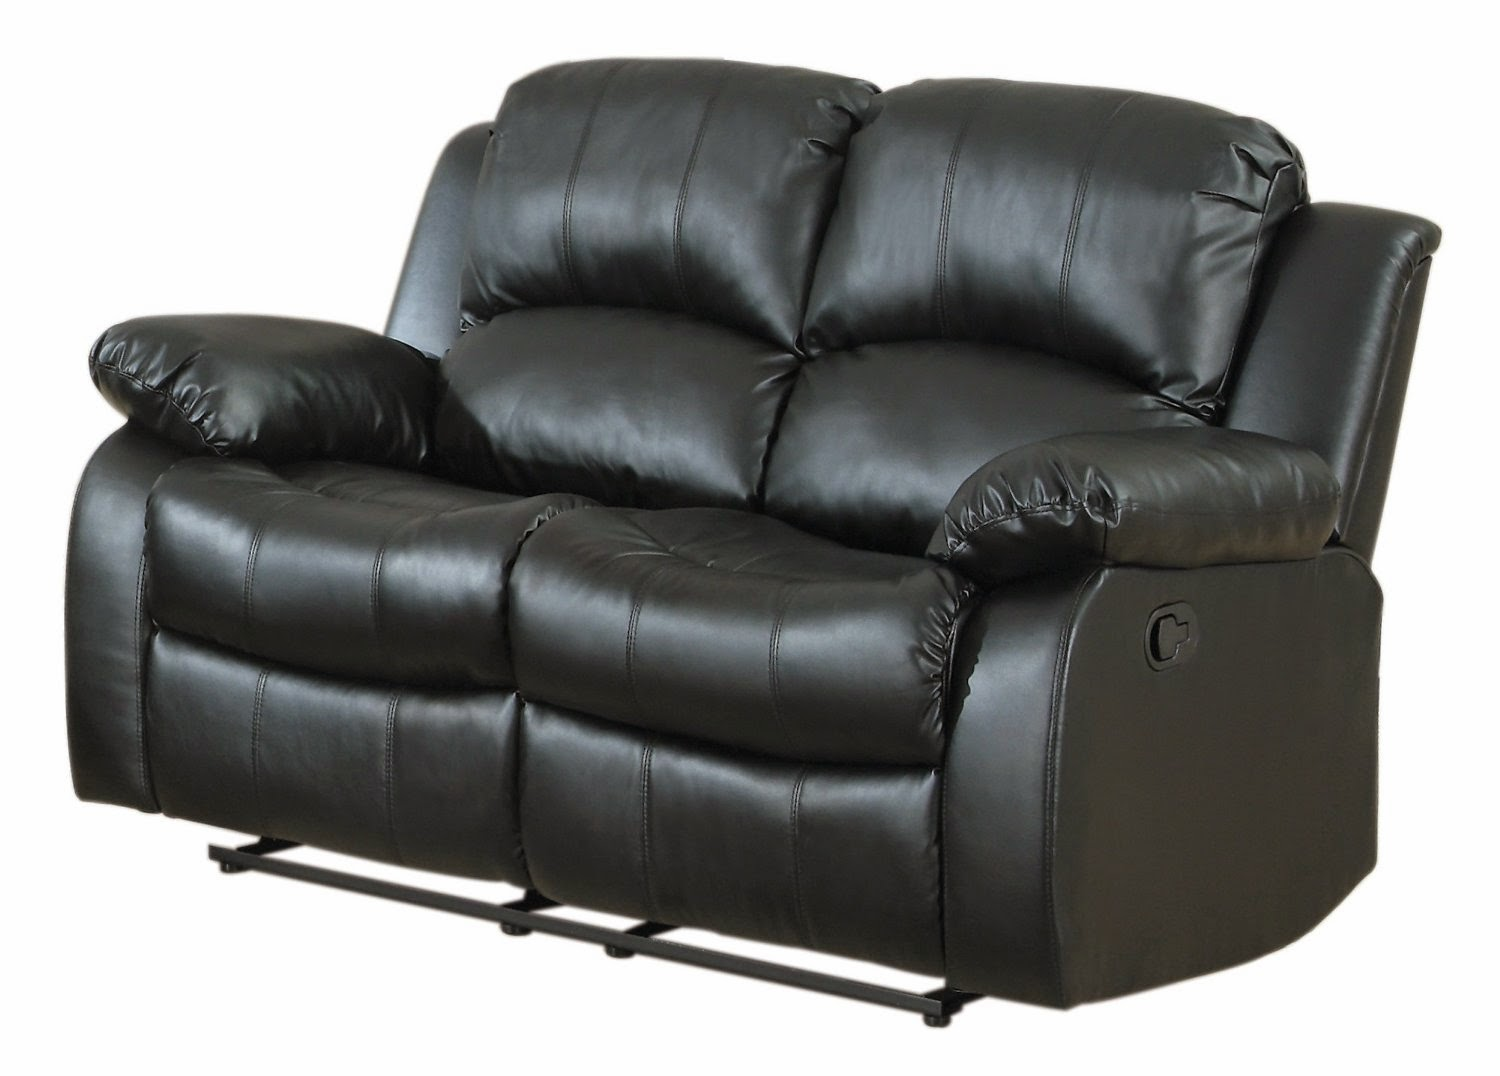 Brown Leather Recliner Sofa Uk Beachy Sleeper Reclining Sofas For Sale Cheap Two Seater